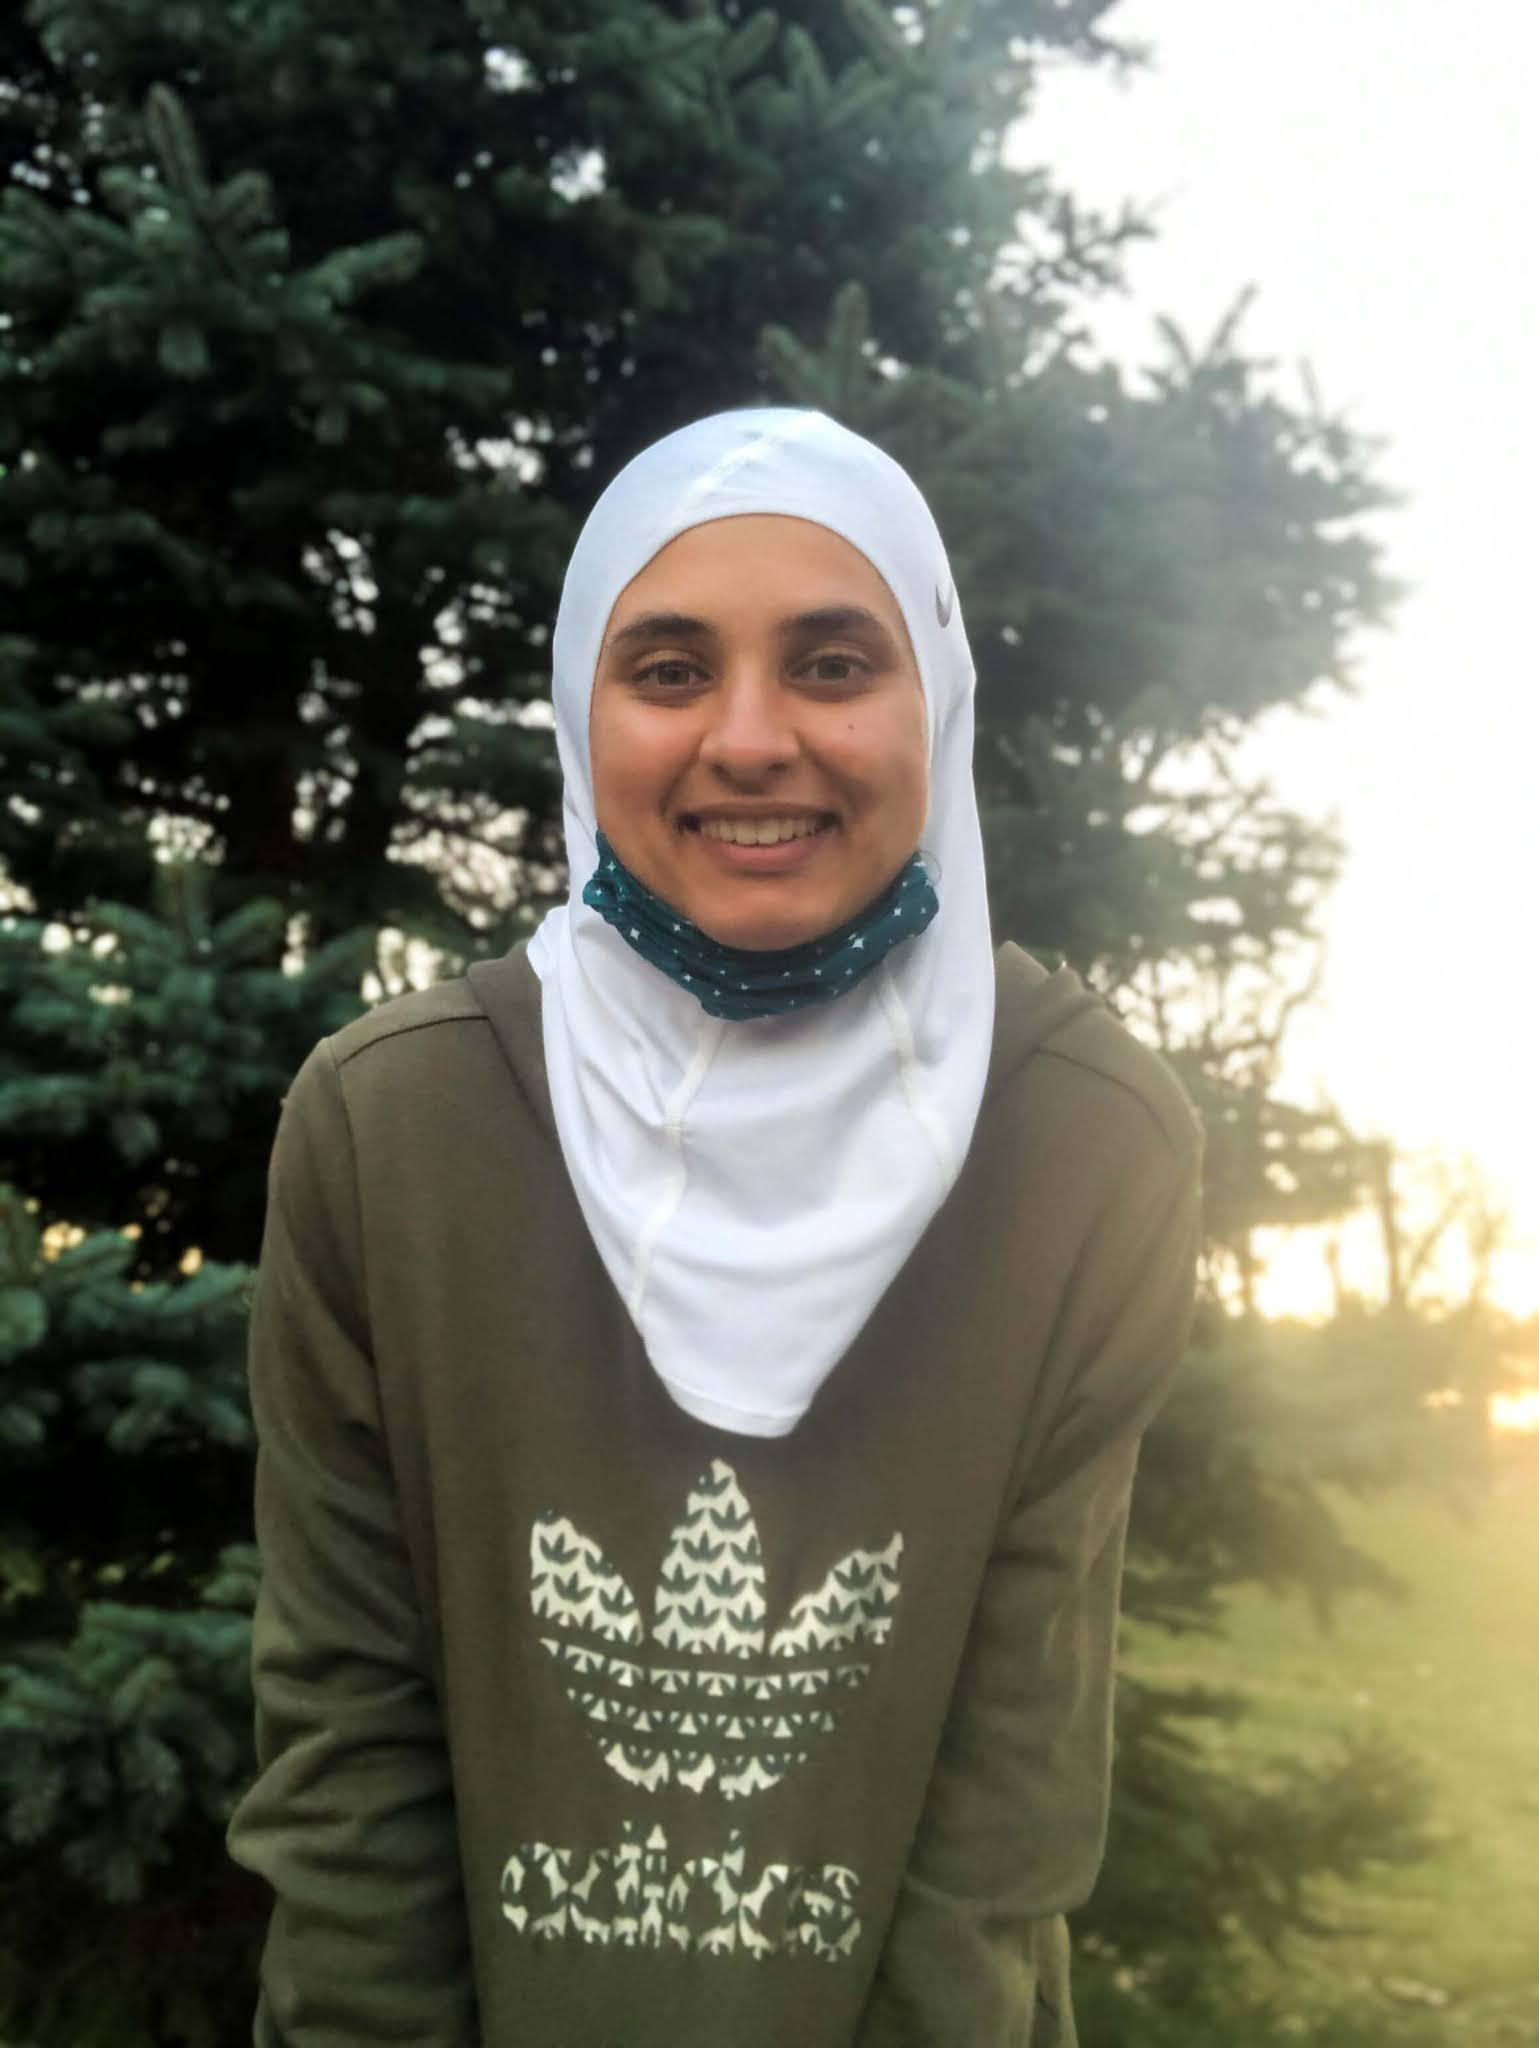 Sahara smiling in front of green tree - white nike hijab with blue starry mask pulled under her chin. Wearing green adidas sweatshirt